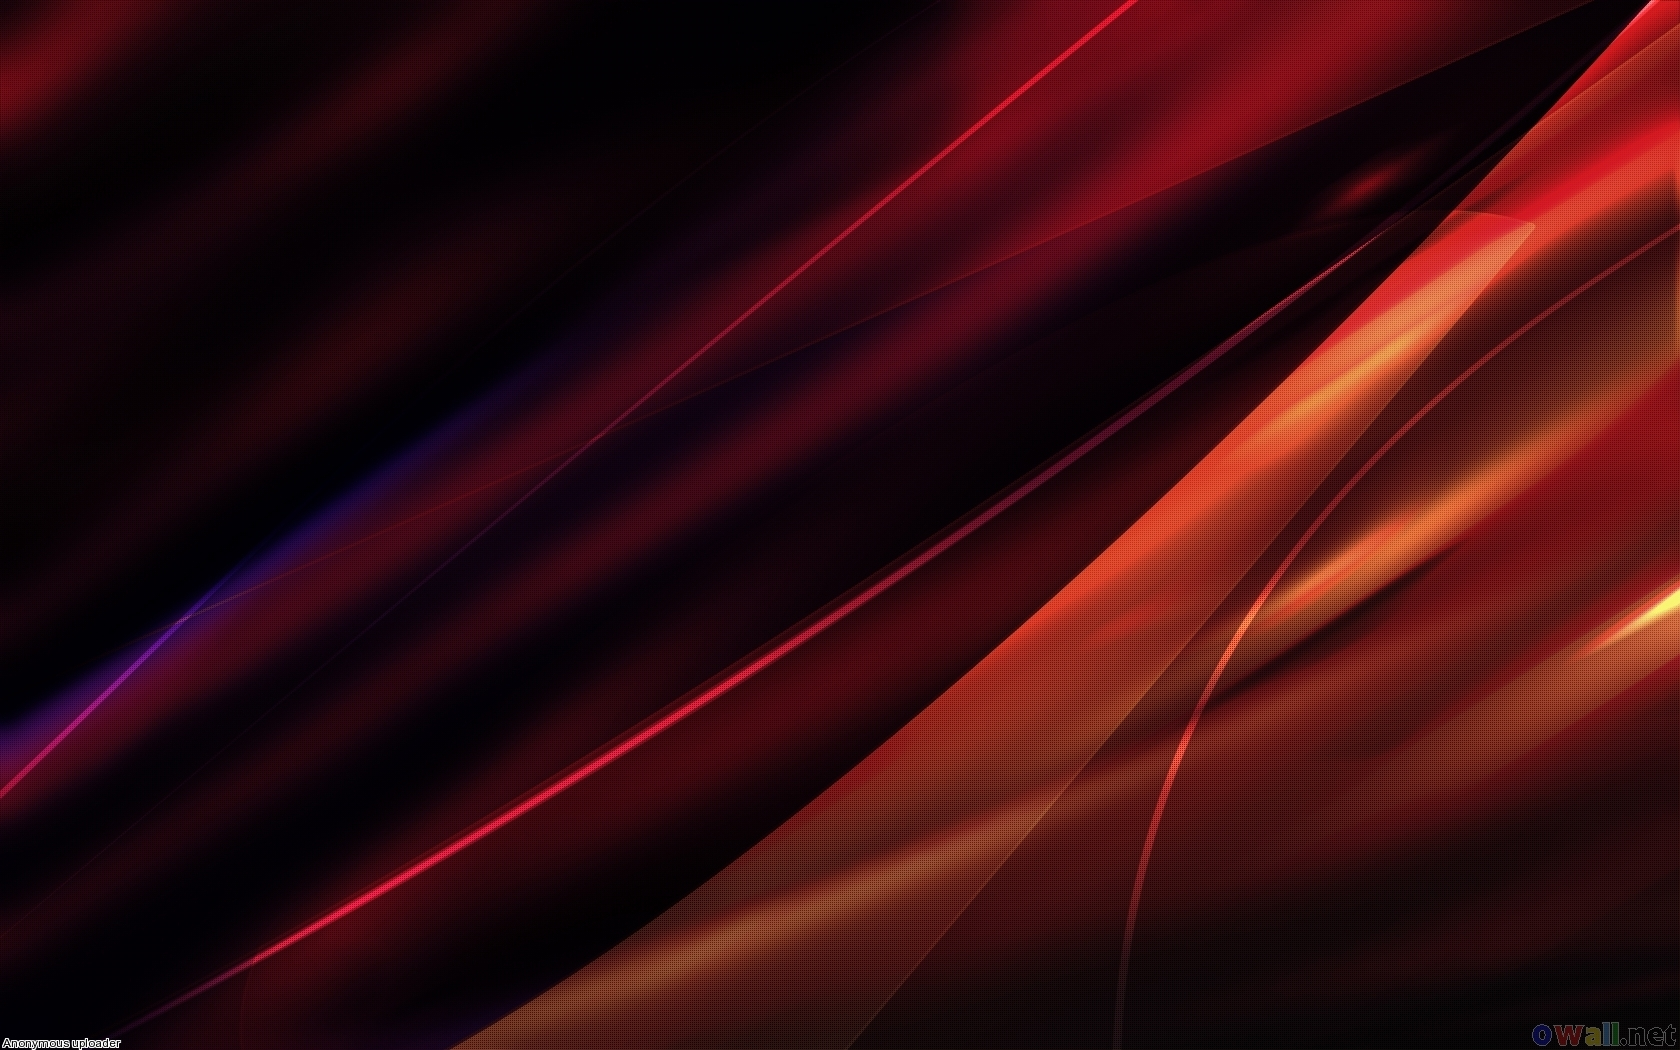 Dark red background wallpaper 17375 open walls Black Background and 1680x1050